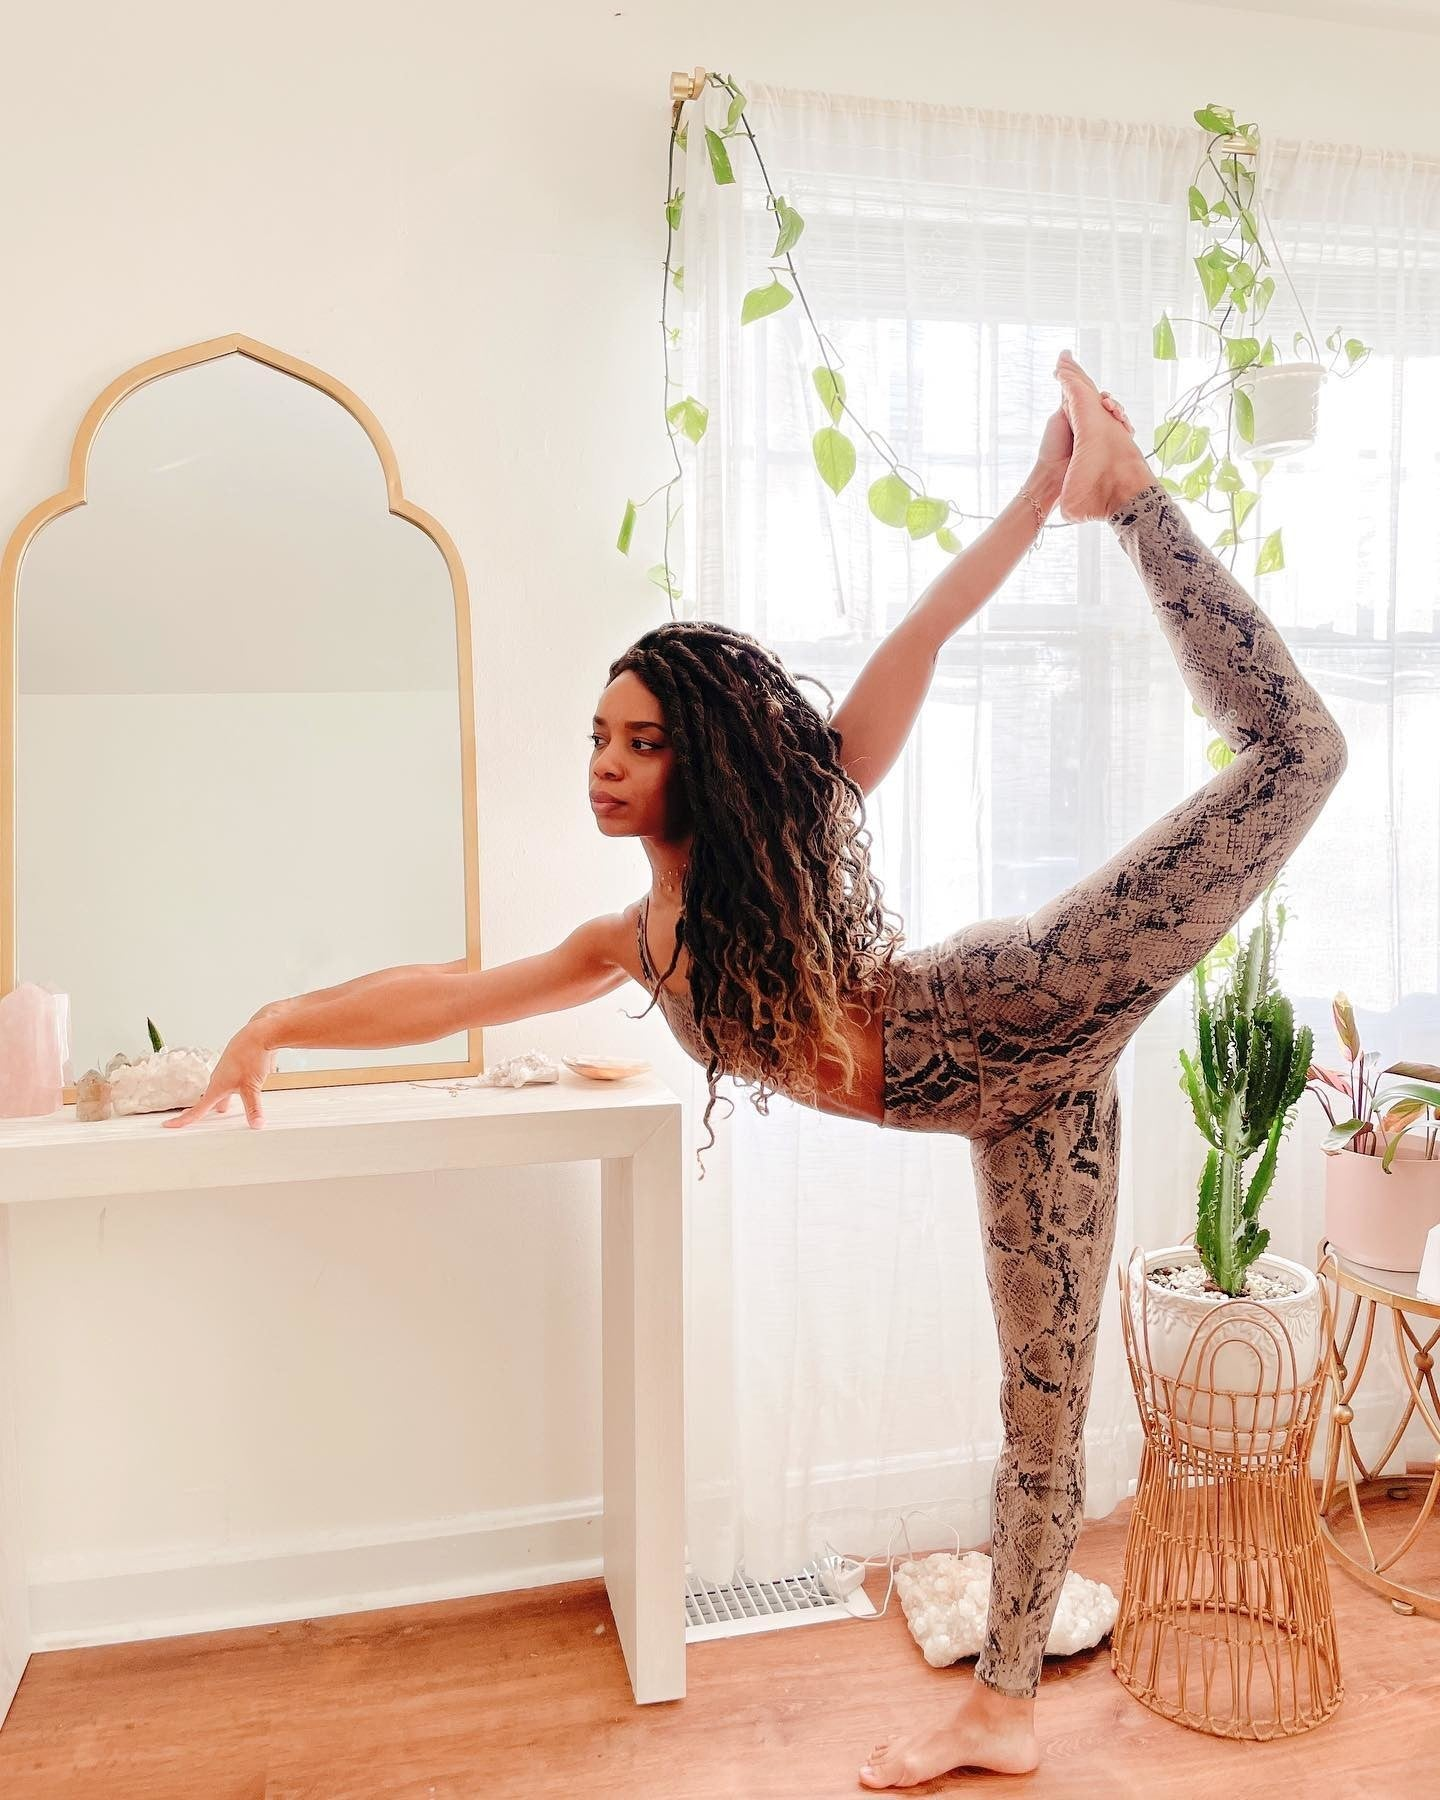 @phyllicia.bonanno wearing a matching Gravel Snakeskin workout set with high-waisted leggings and classic sports bra while stretching in her rattan-furniture- and plant-adorned living room.